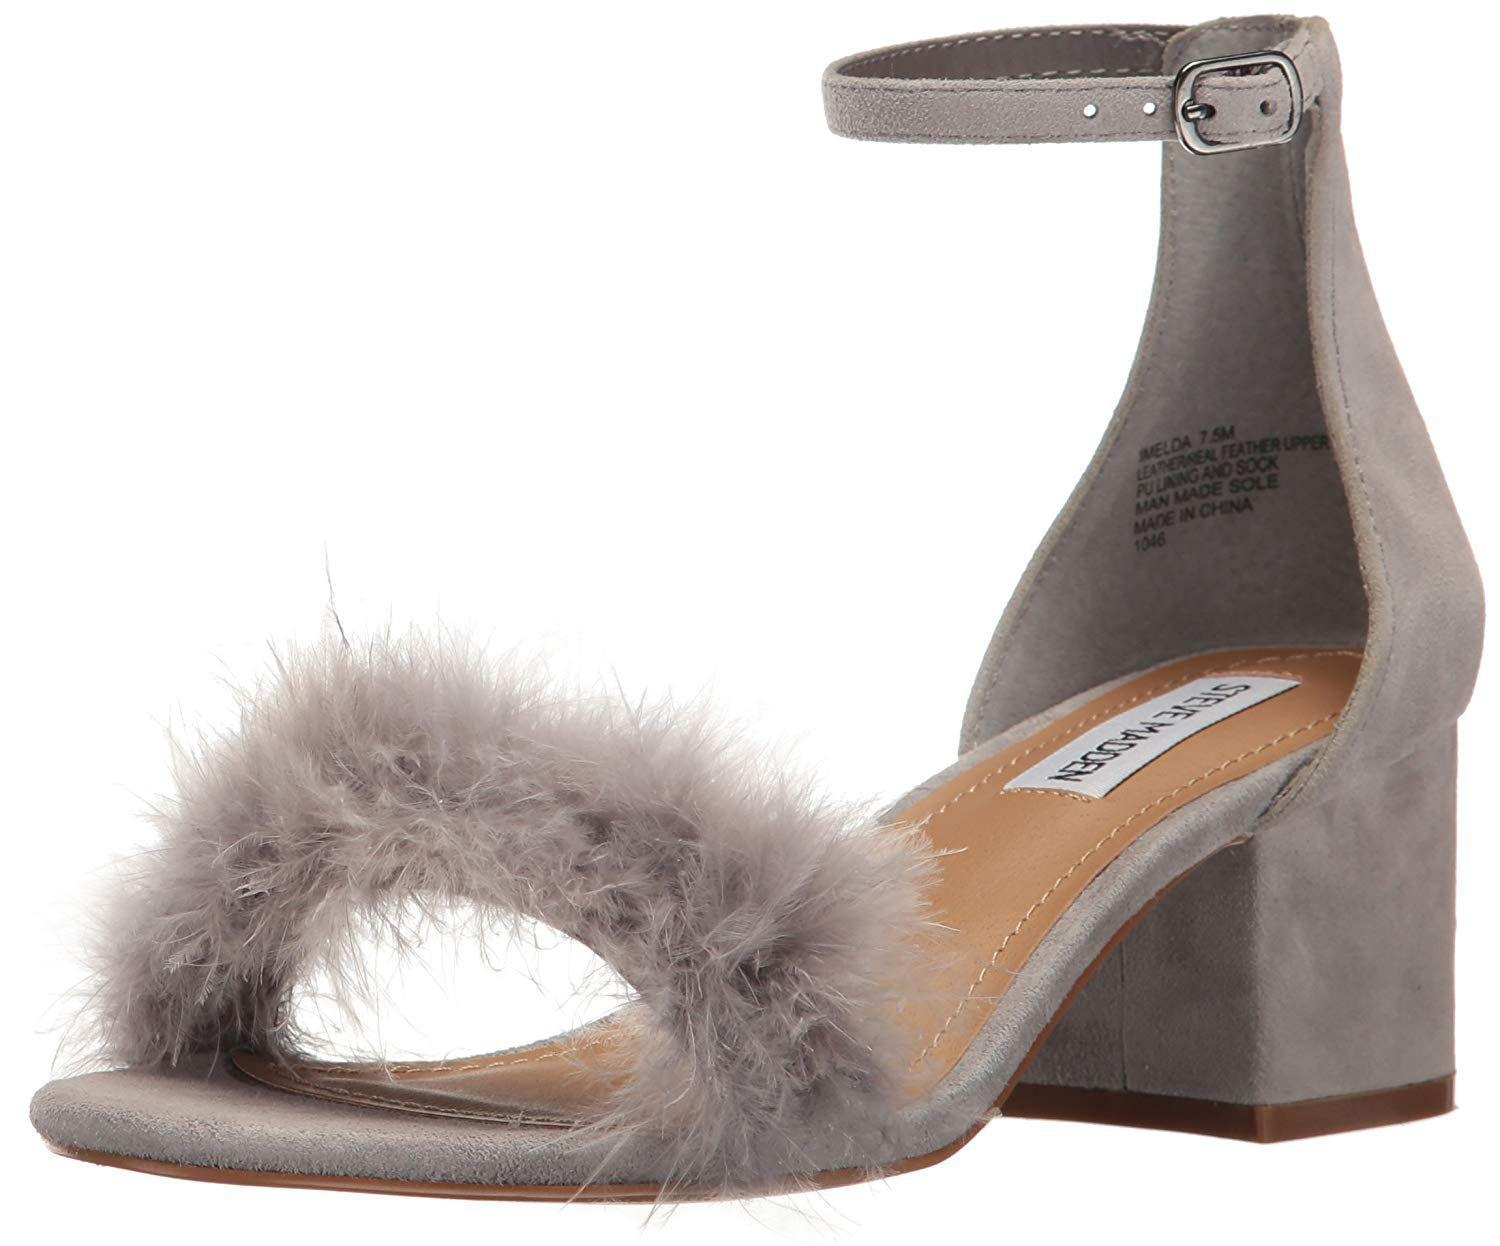 e32cb04ce39 Lyst - Steve Madden Womens Imelda Leather Open Toe Special Occasion ...